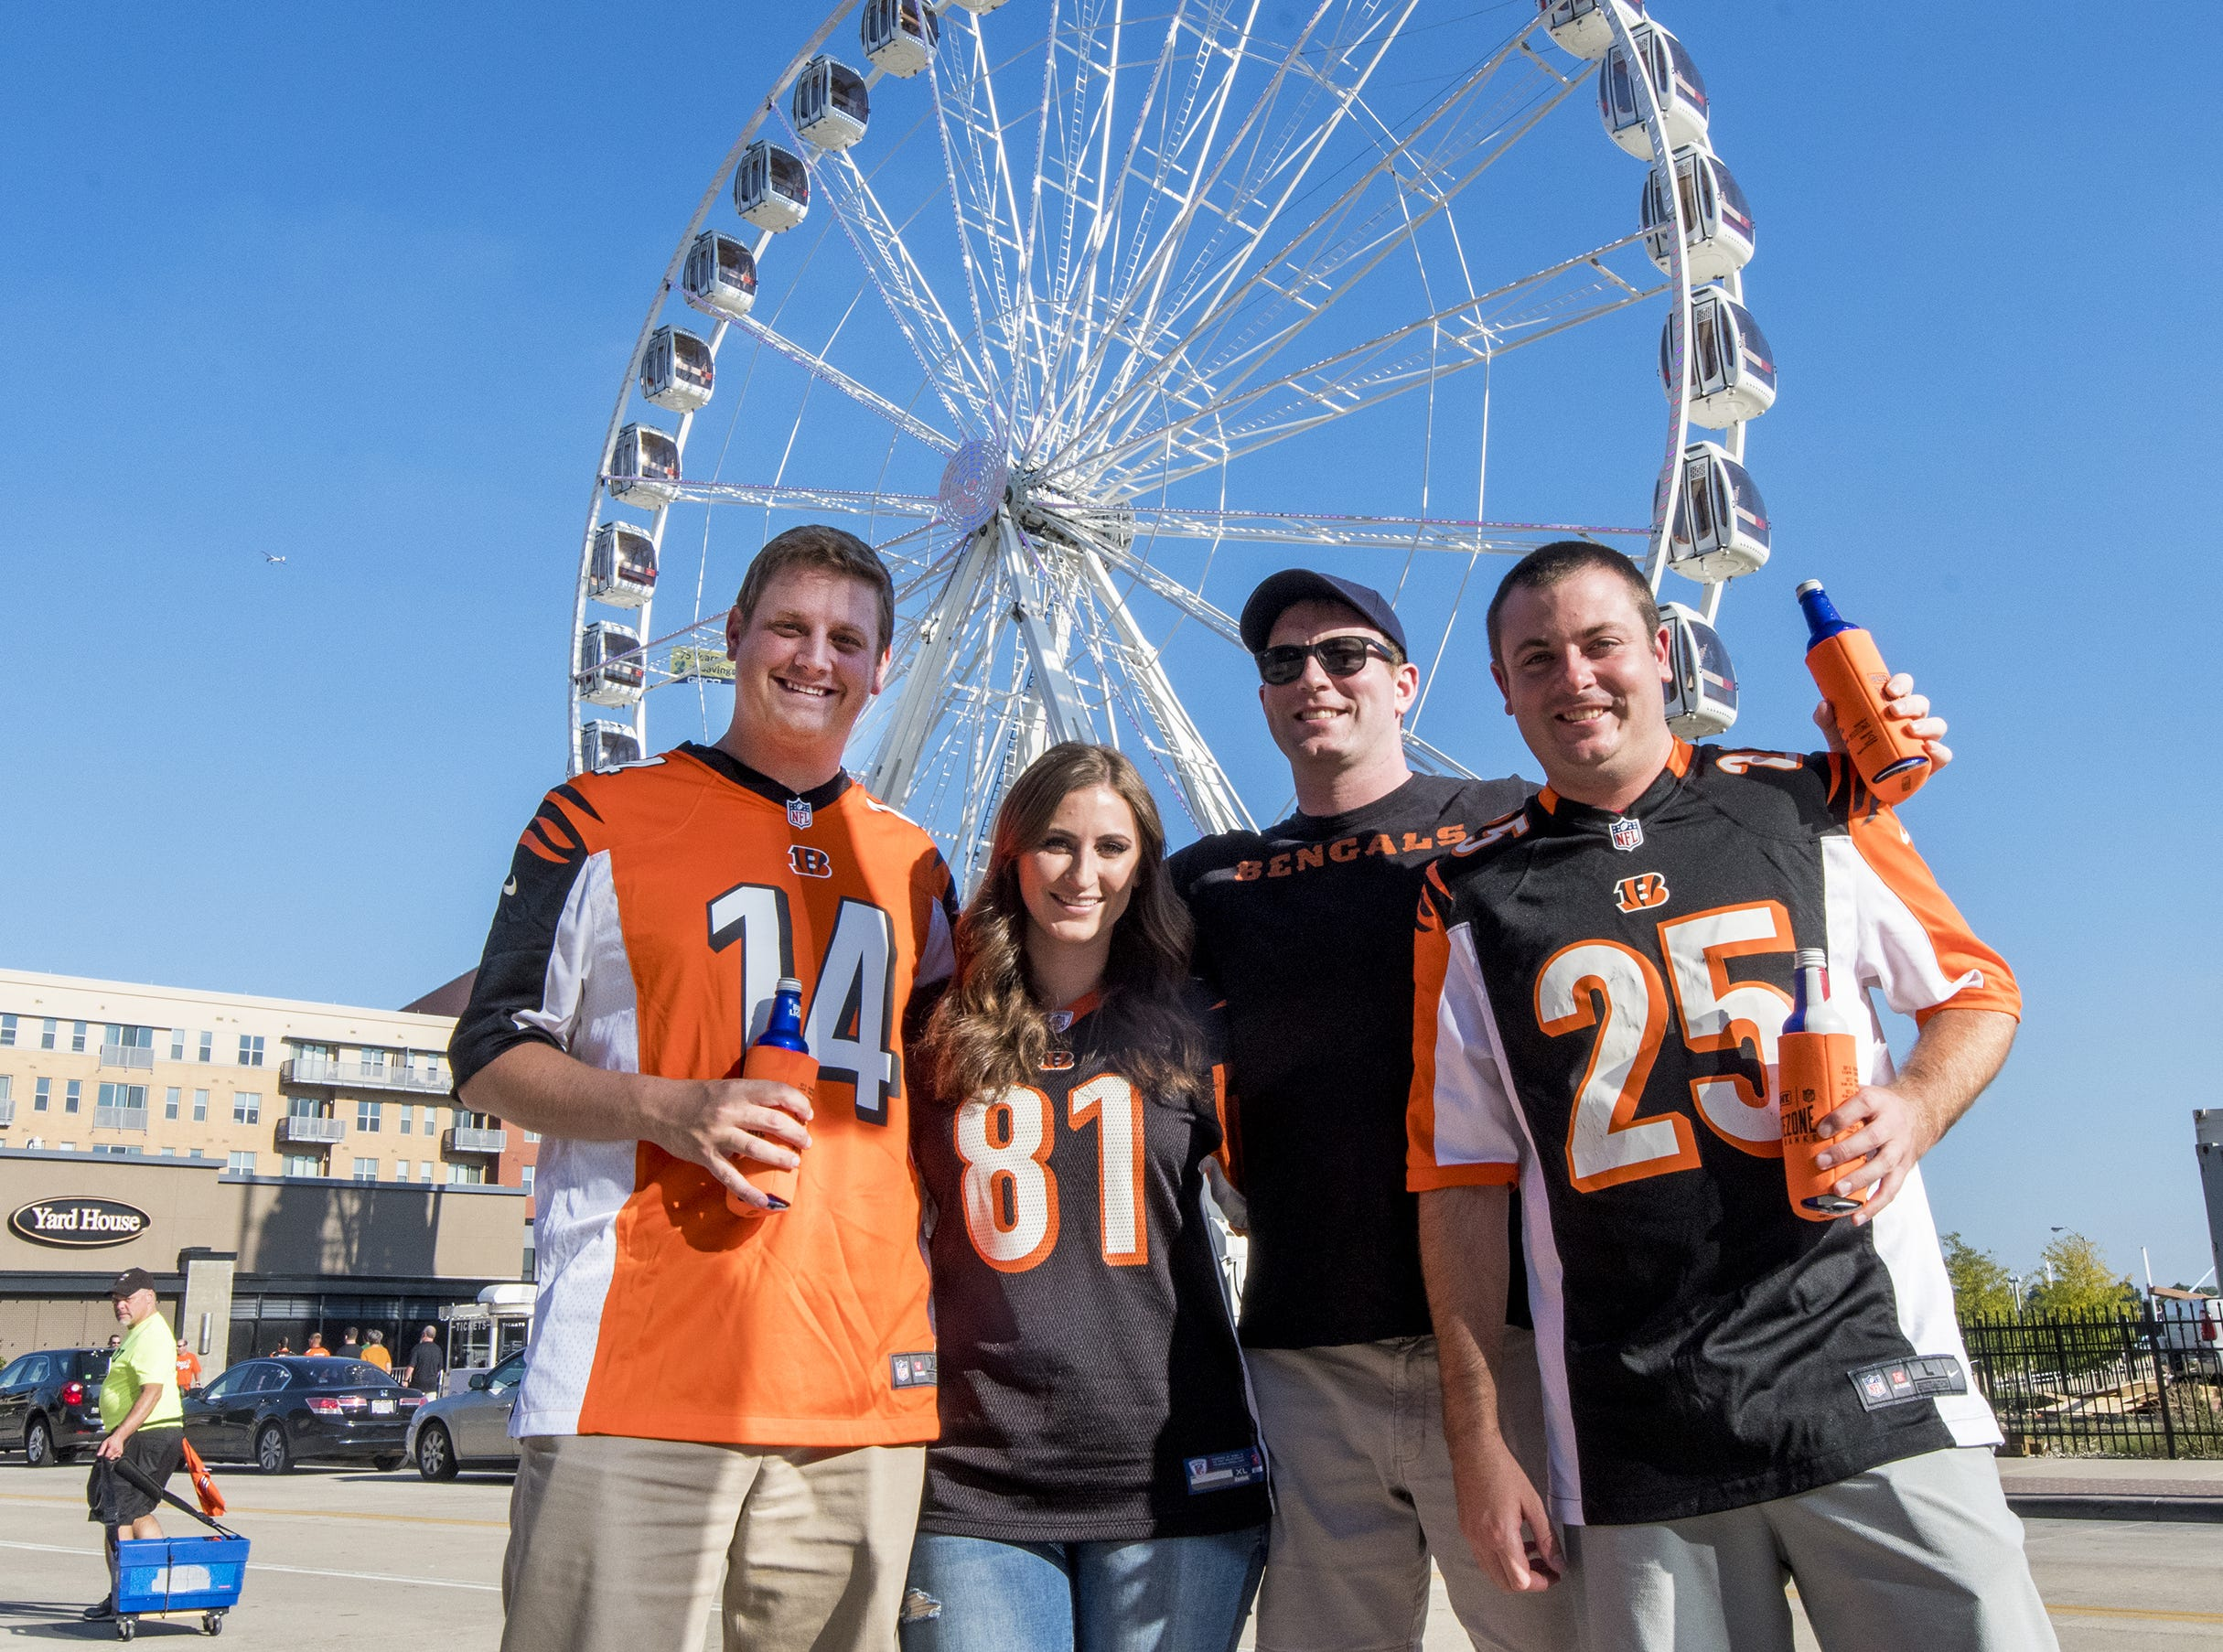 Bengals fans Mitchell Smith, Bryanna Owens, Joe Gillespie and Sean O'Daniel hang out in the Bud Light tailgate zone before the Bengals game against the Baltimore Ravens Thursday, September 13, 2018 in Cincinnati, Ohio.